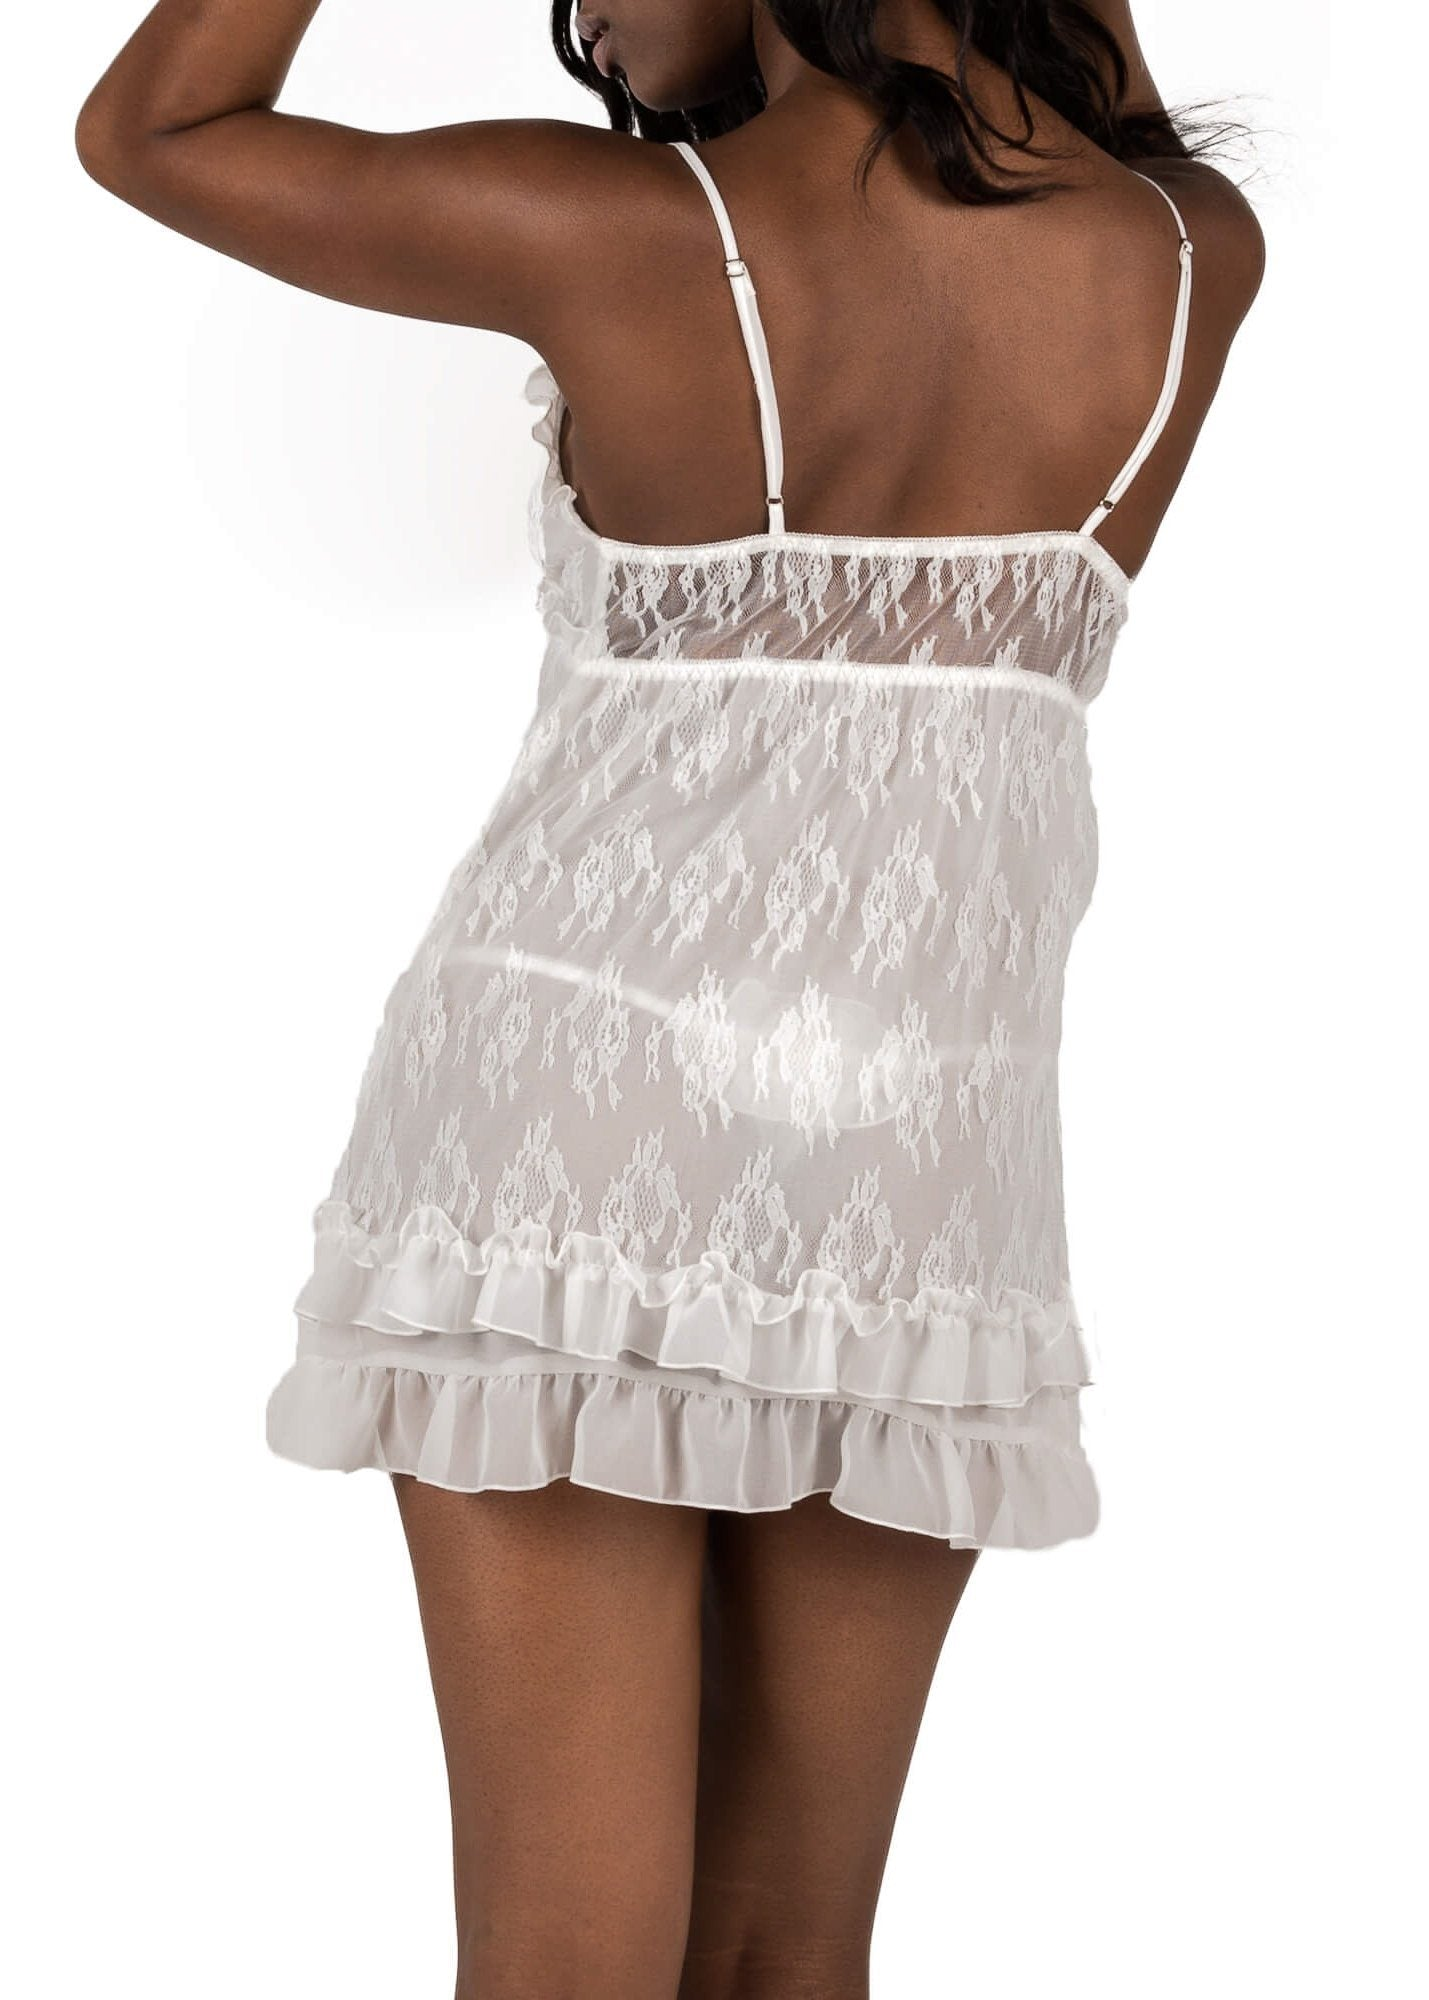 Chantilly Babydoll - White Mystique Intimates